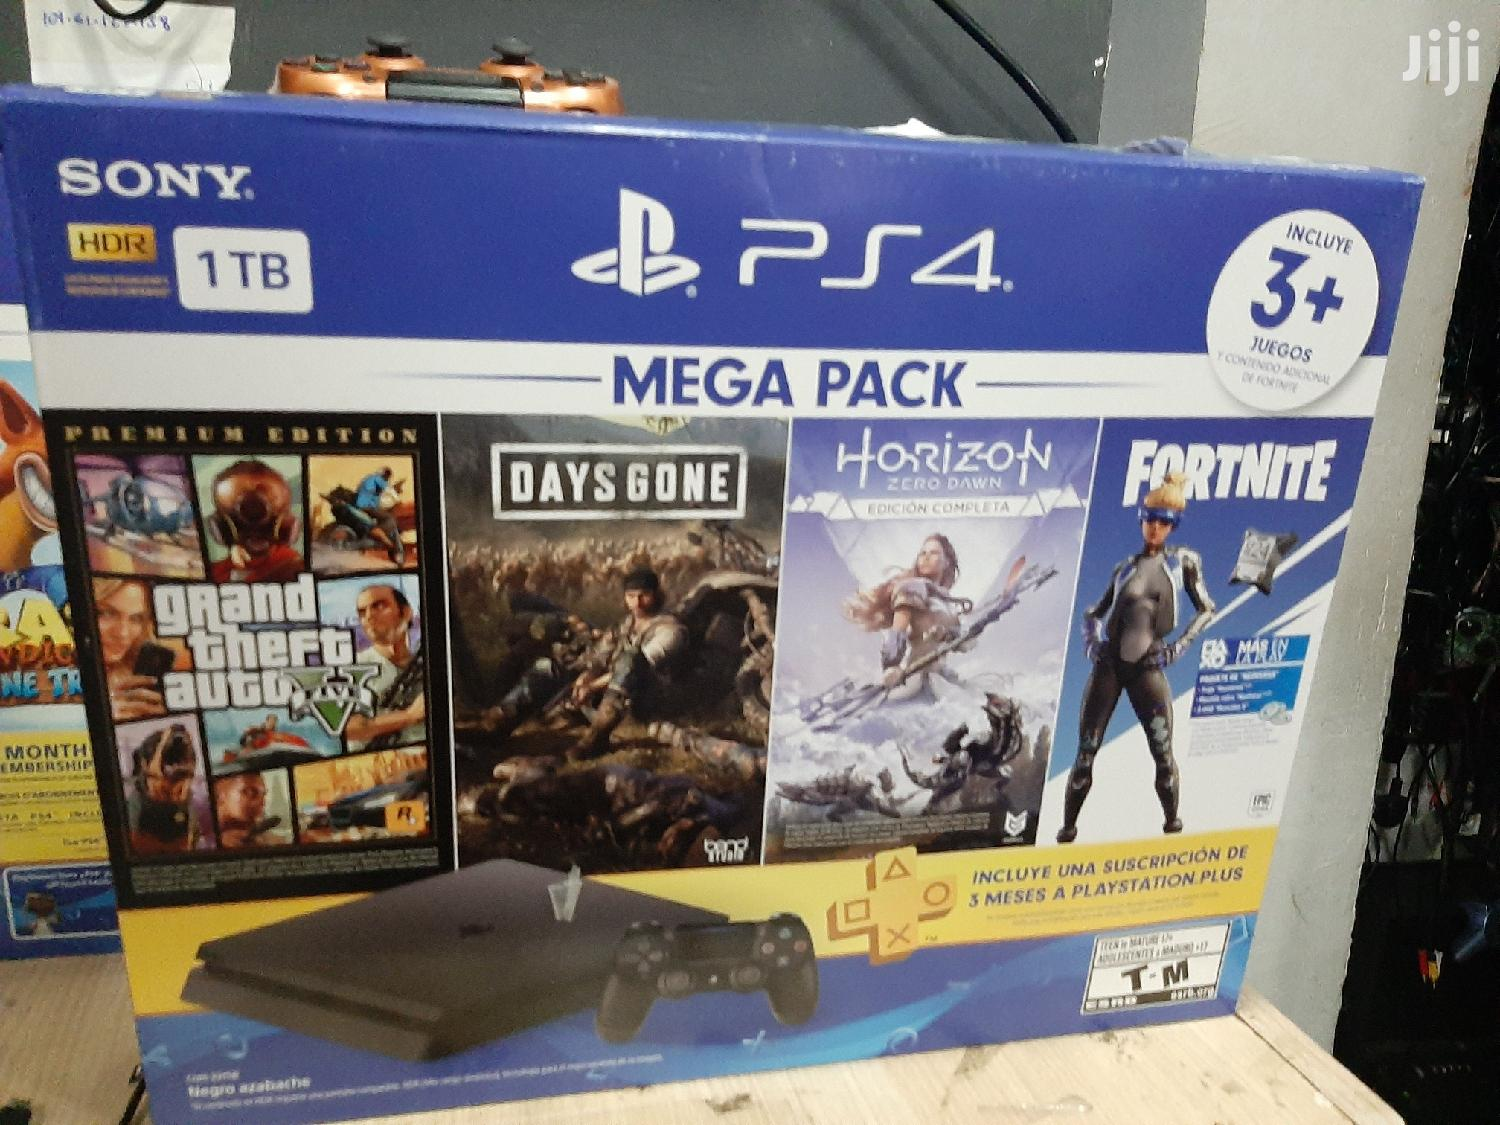 Play Station 4 With Days Gone,GTA V,Fornite And Horizon